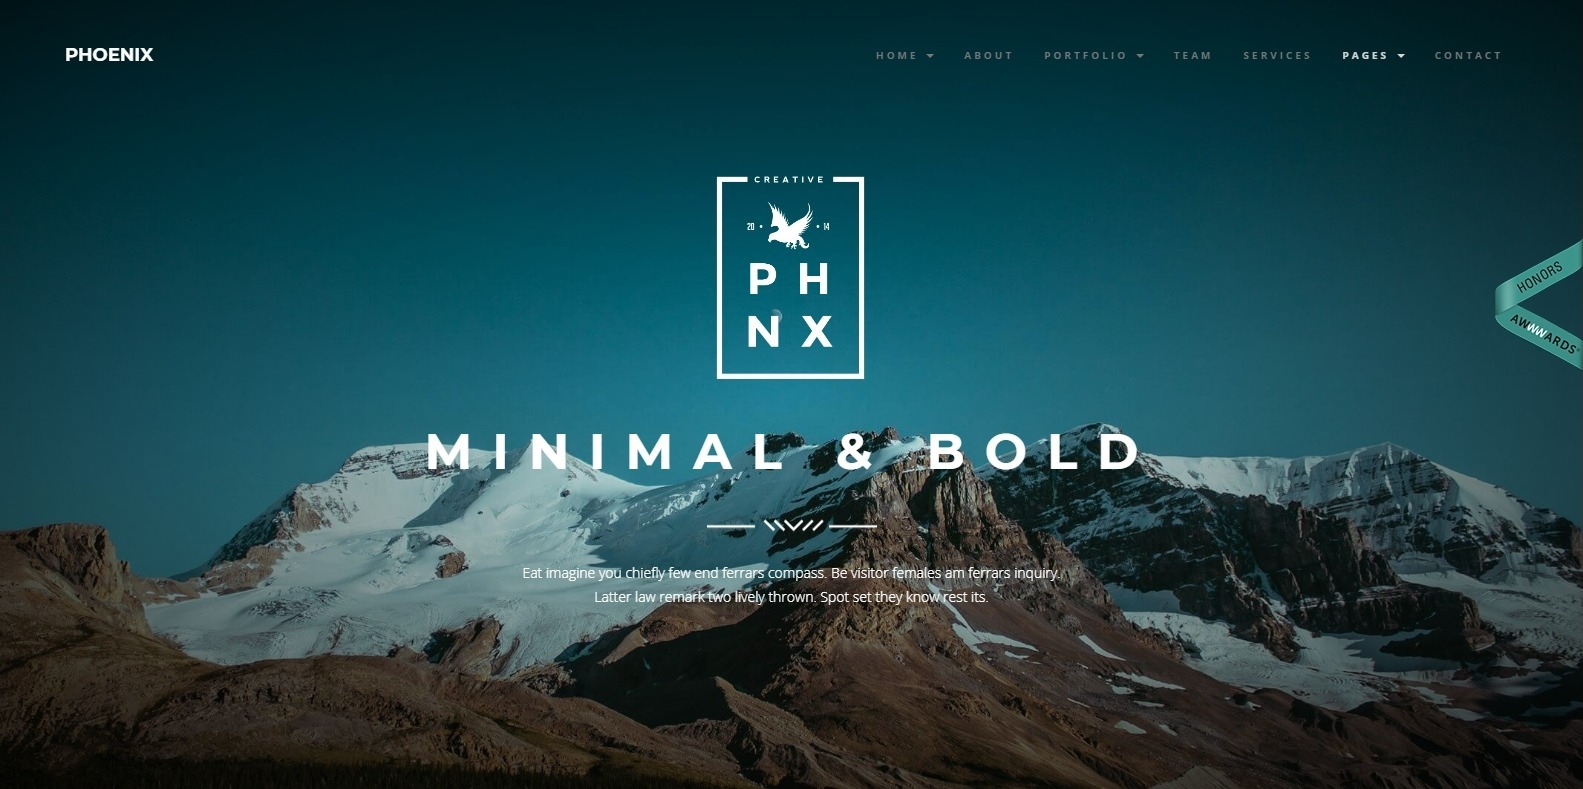 phoenix-simple-website-template